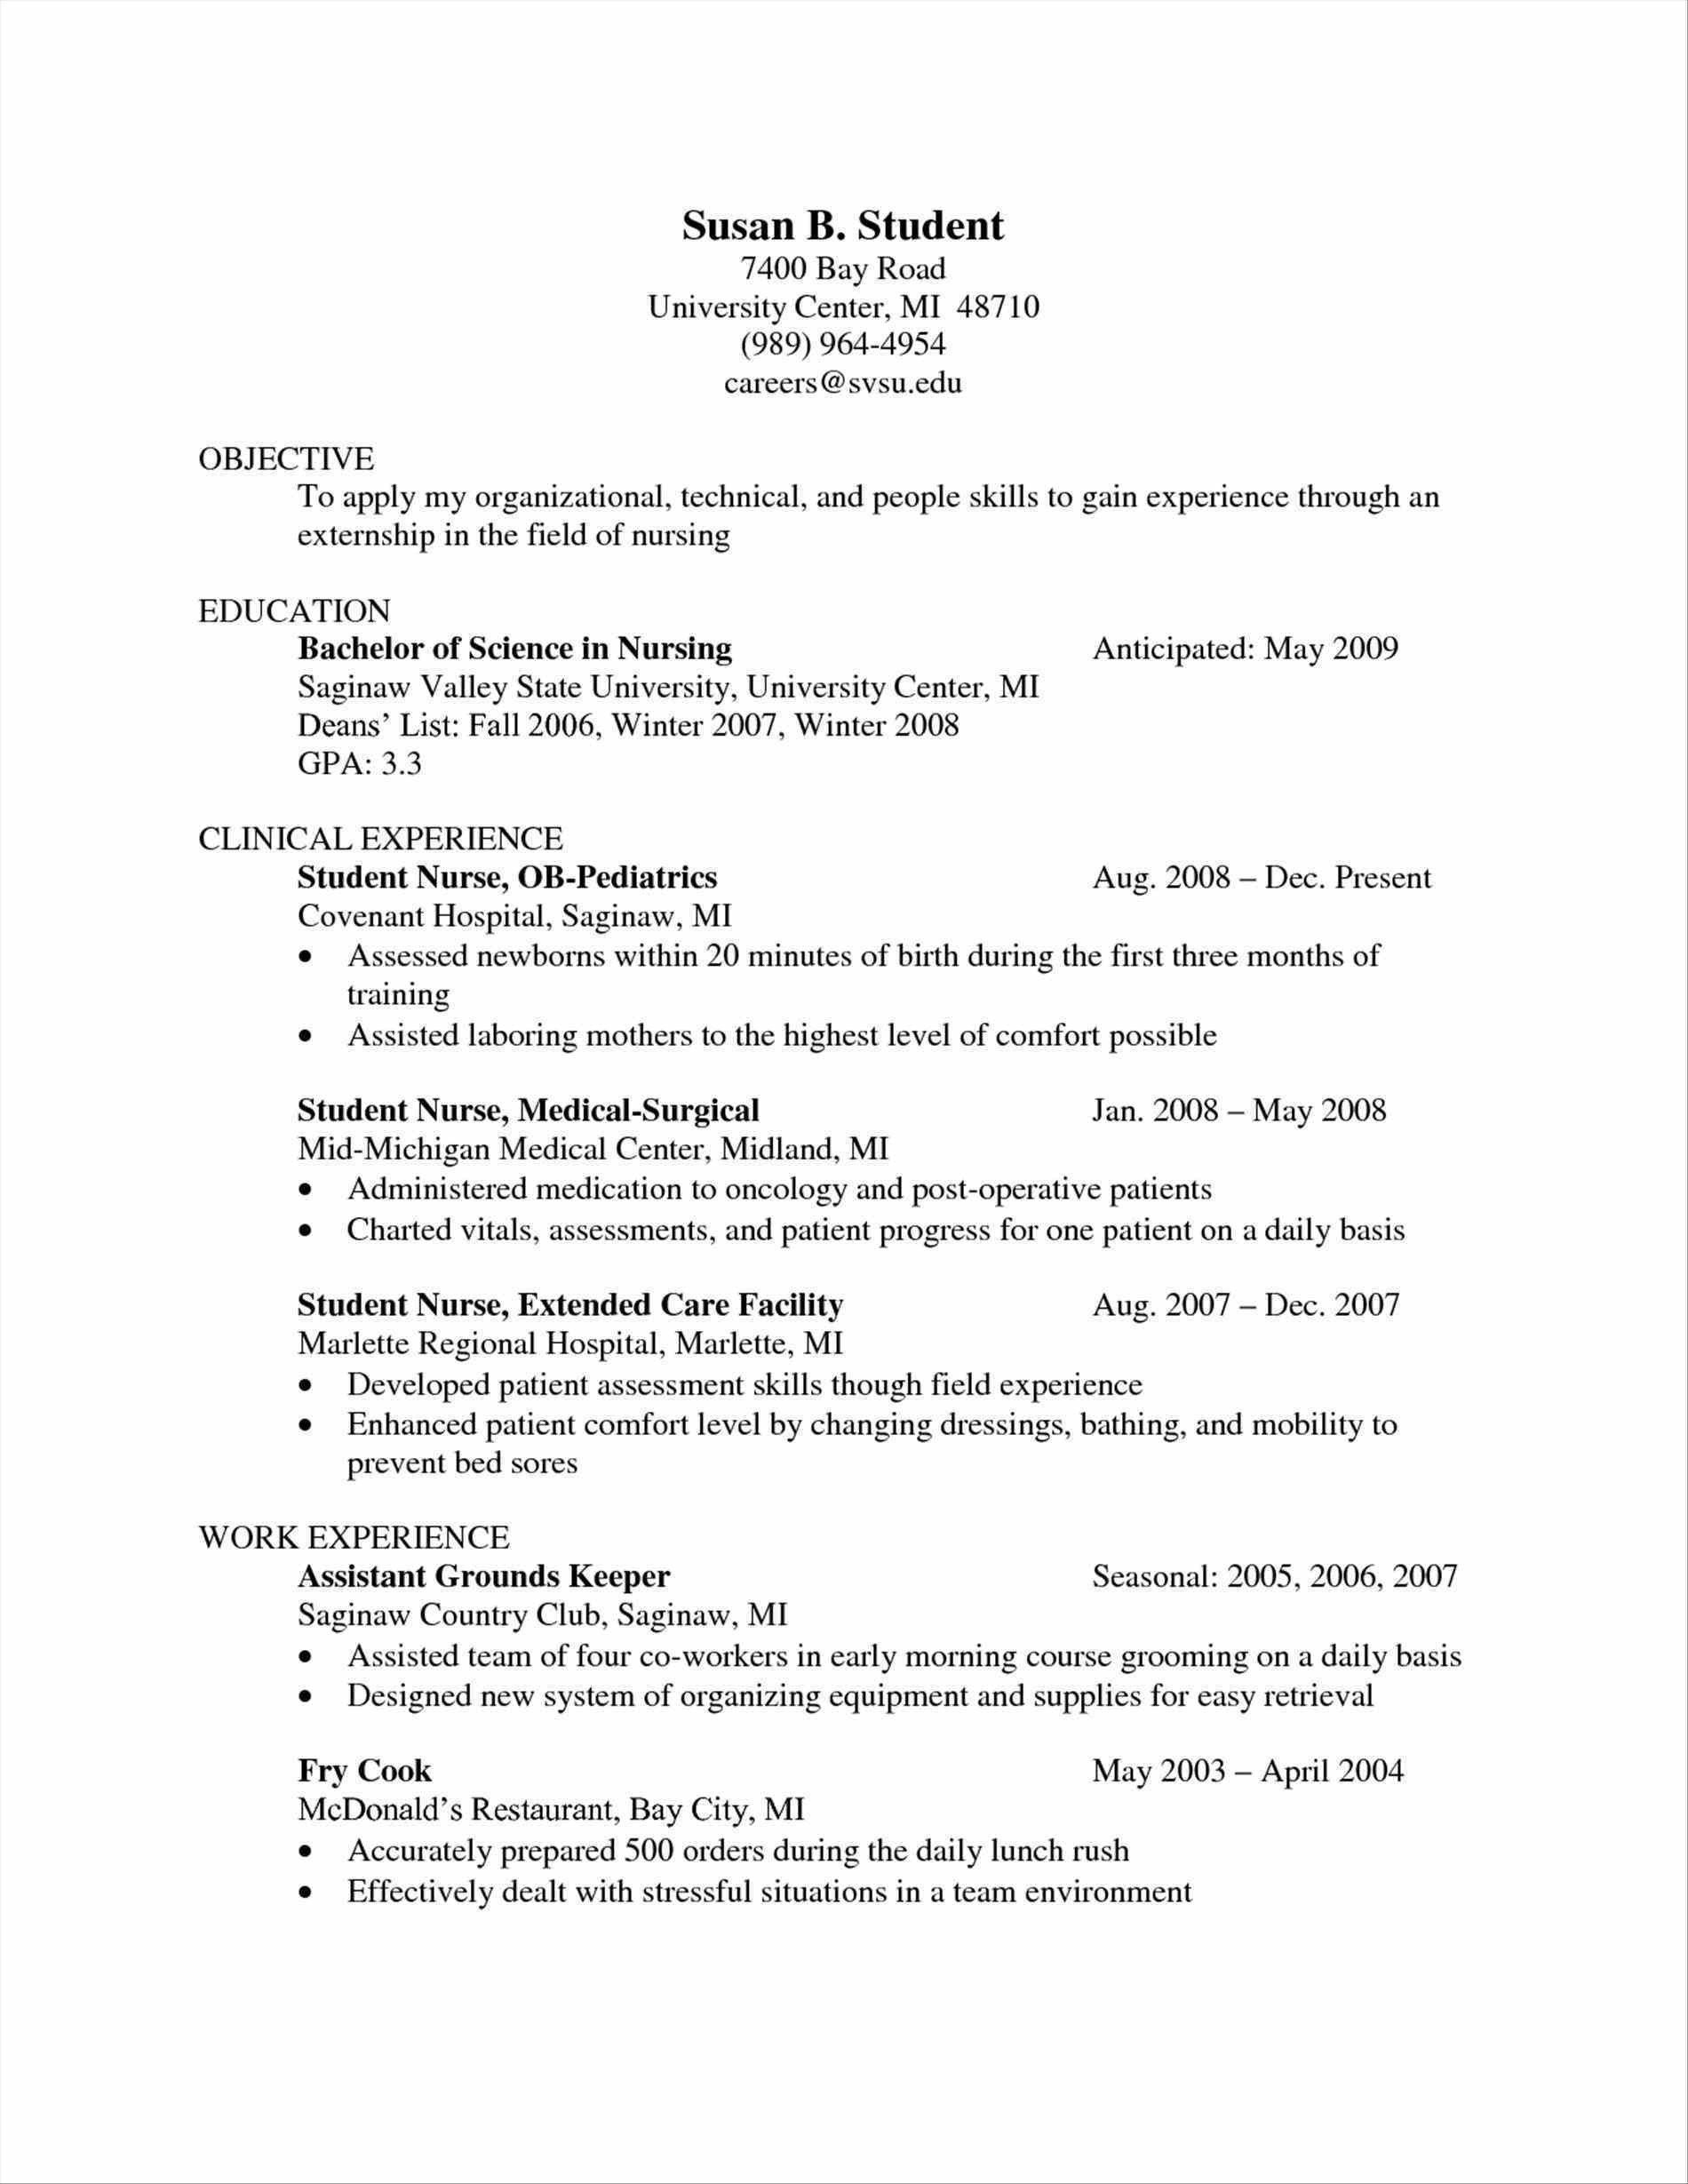 Resume for Med Surg Nurse - Nursing Skills Resume Awesome Nursing Resume Lovely Rn Bsn Resume